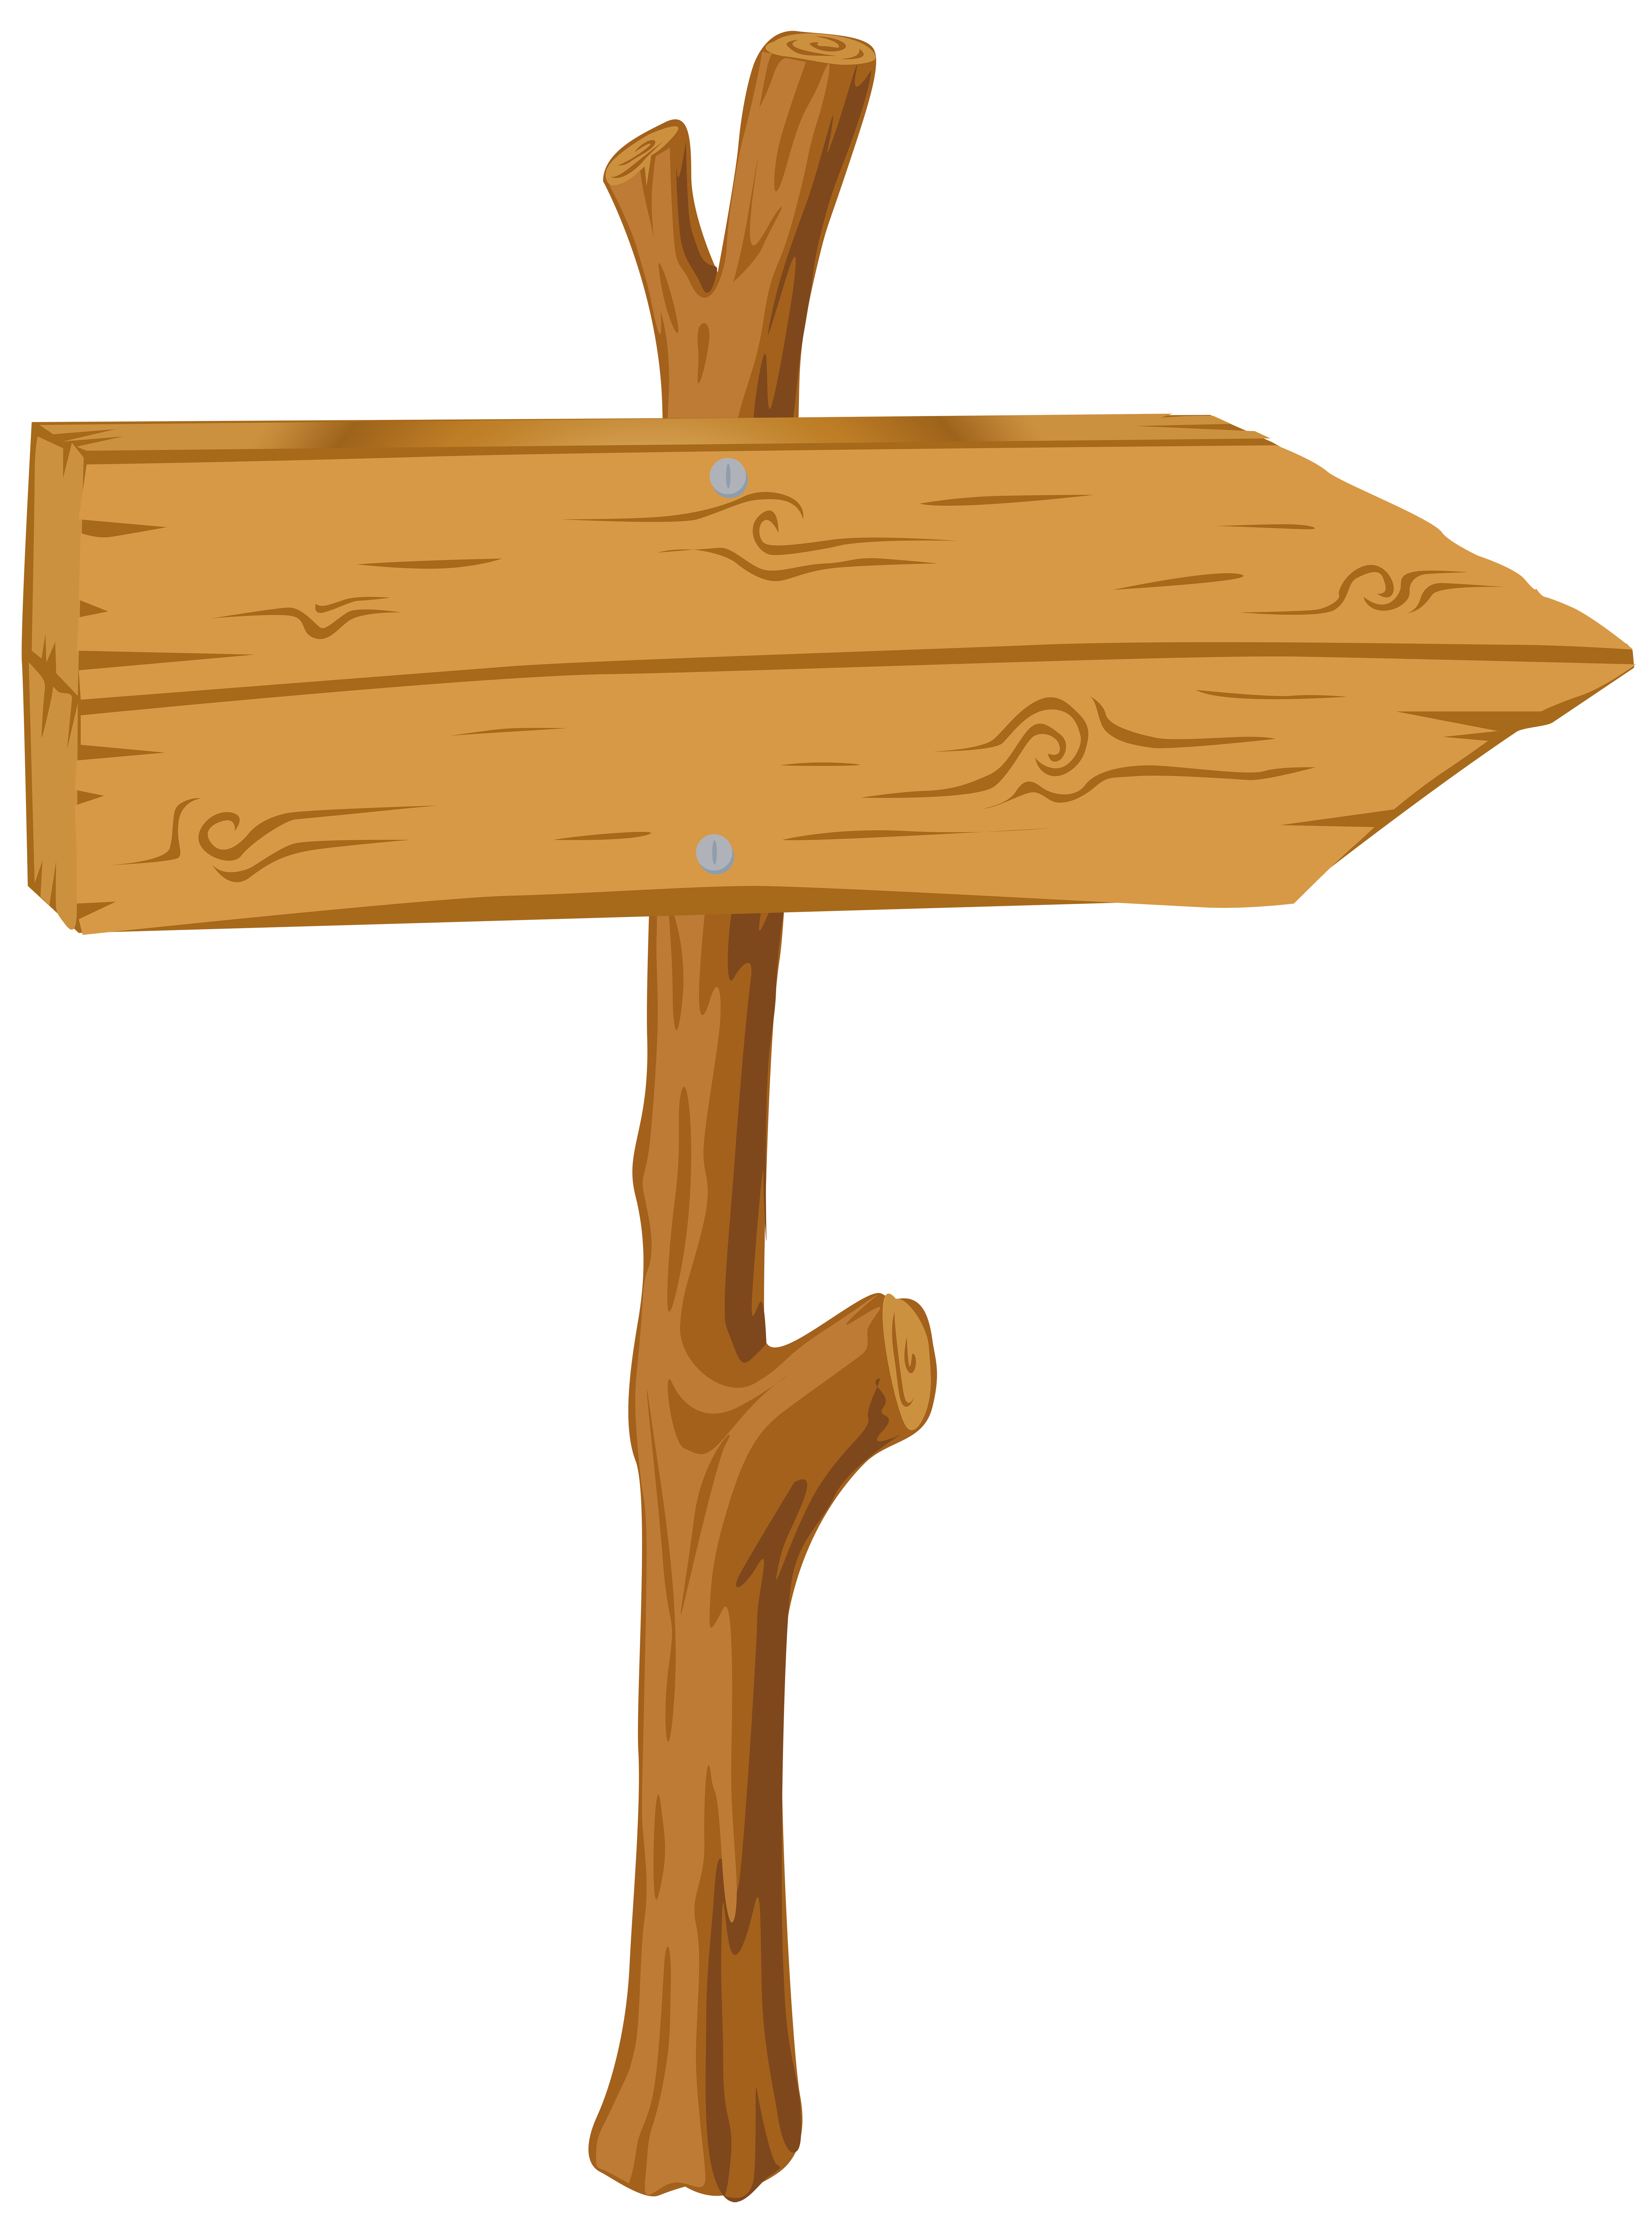 Wooden sign transparent png. Clipart arrow signboard